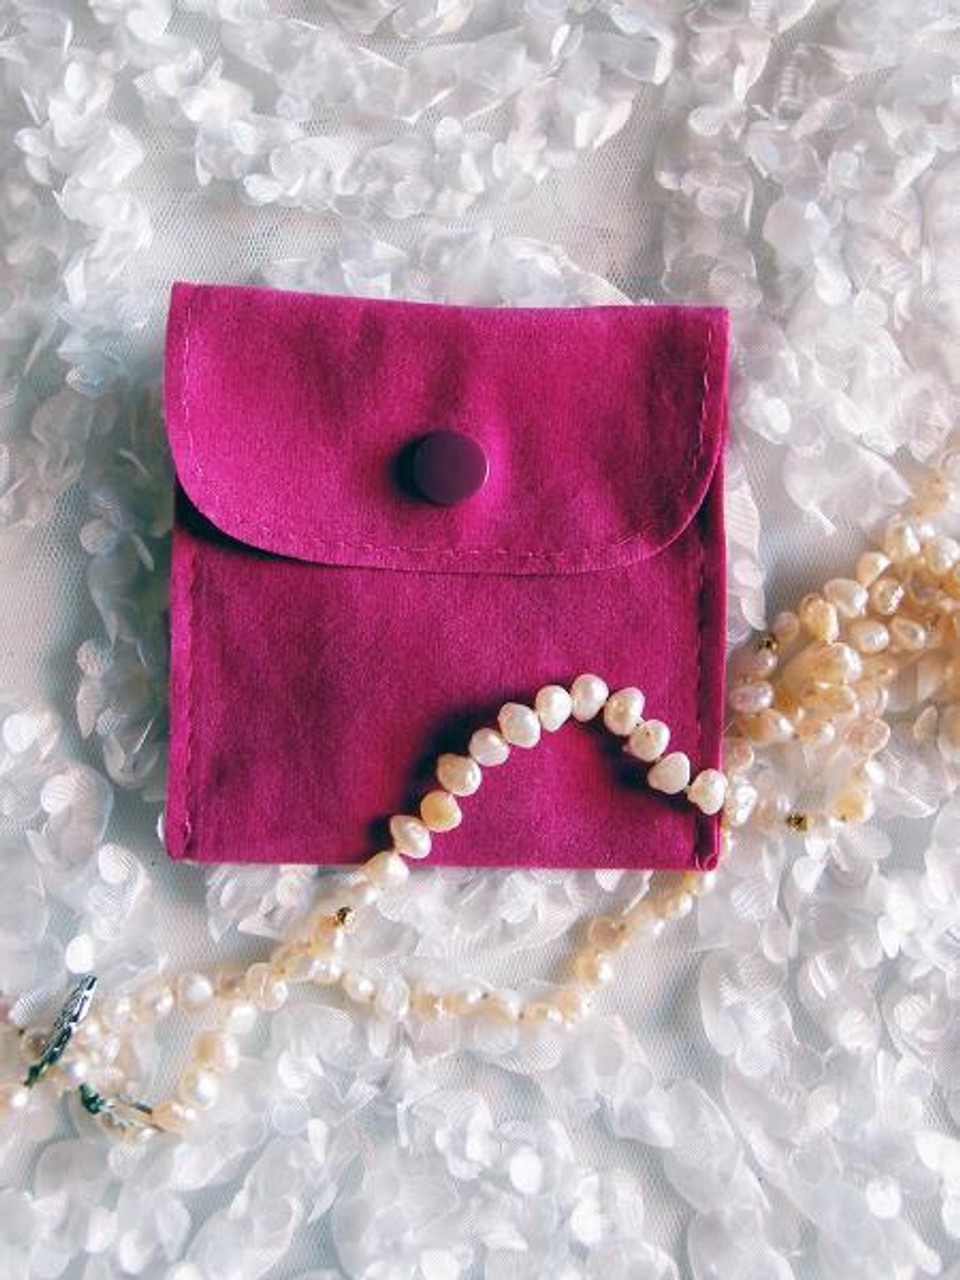 Wholesale Velvet Jewelry Bags, Roseberry Velvet Jewelry Pouch with Snap Fastener 3 x 3 inches J134-09   Packaging Decor